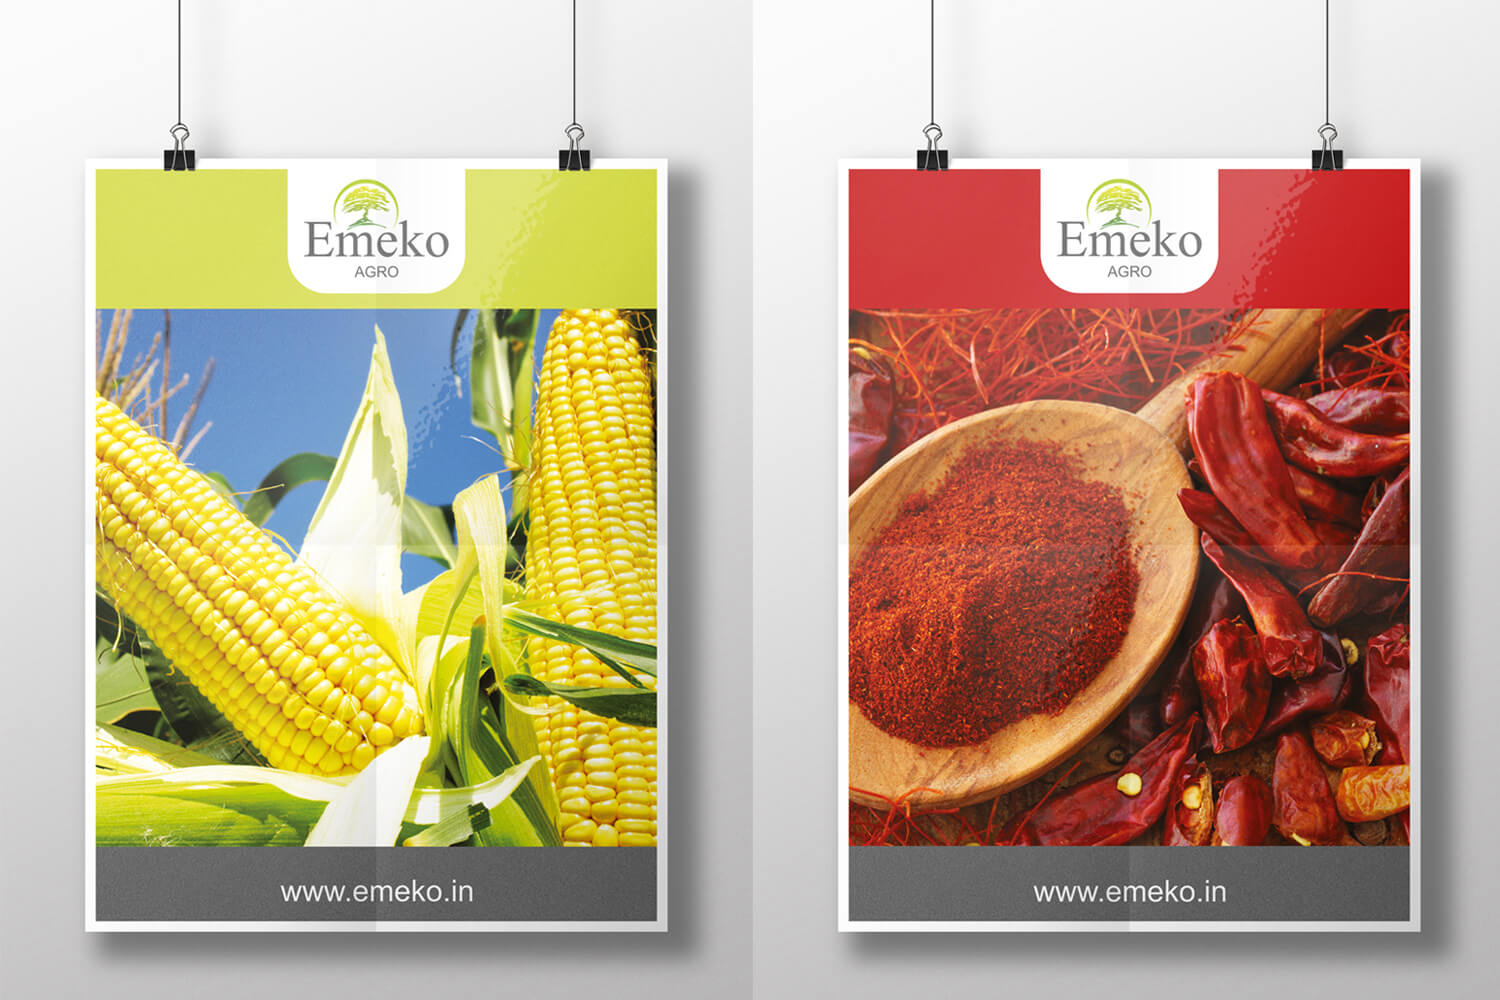 Exhibition Stall Posters : Emeko exhibition stall posters designs printing getnoticed